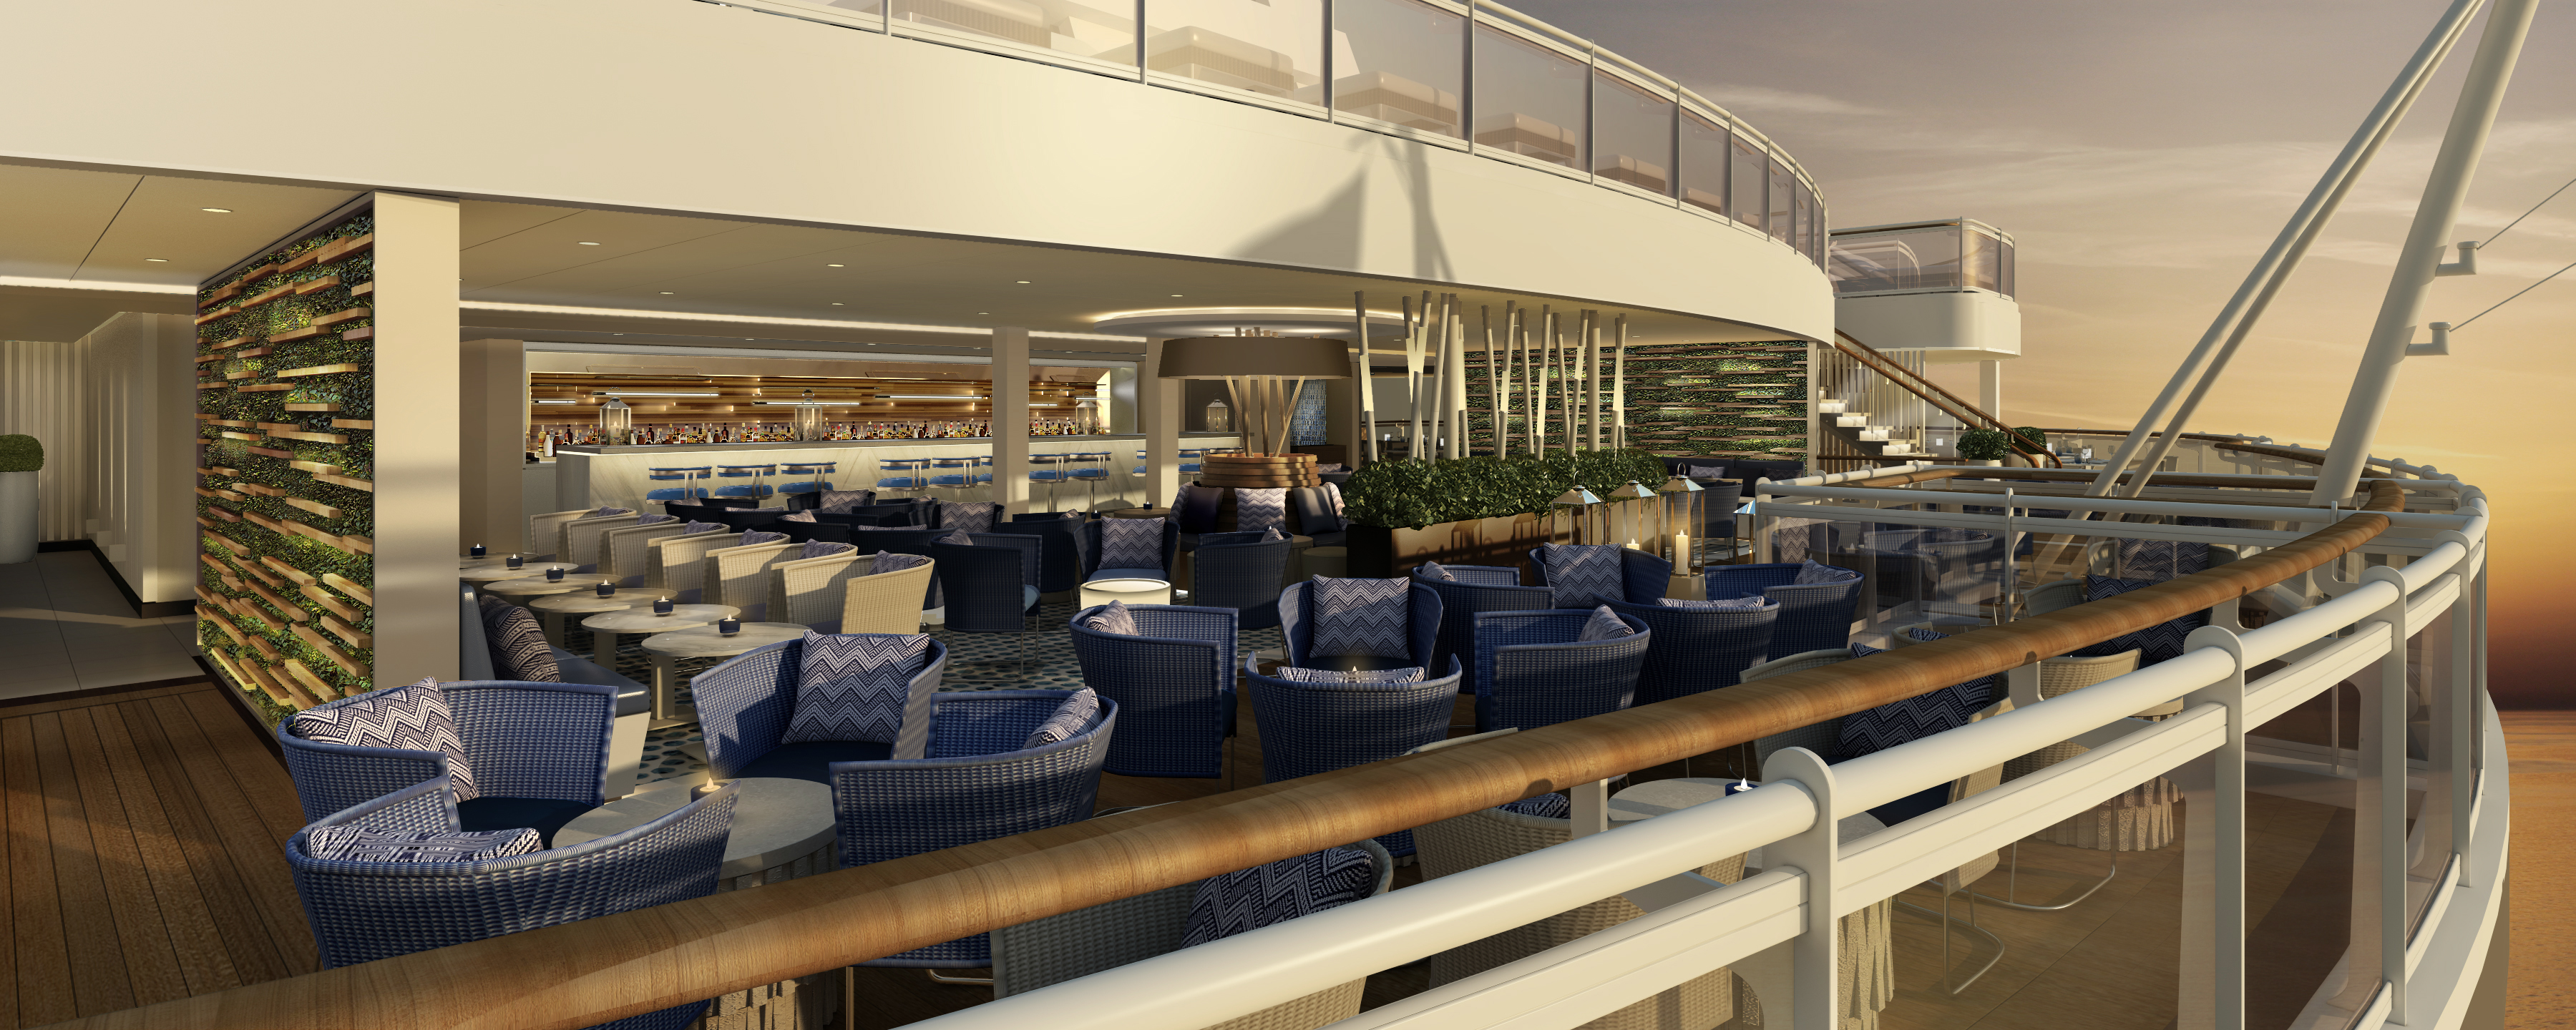 Dining al fresco: The Lido at the rear of the ship (Picture: P&O Cruises)